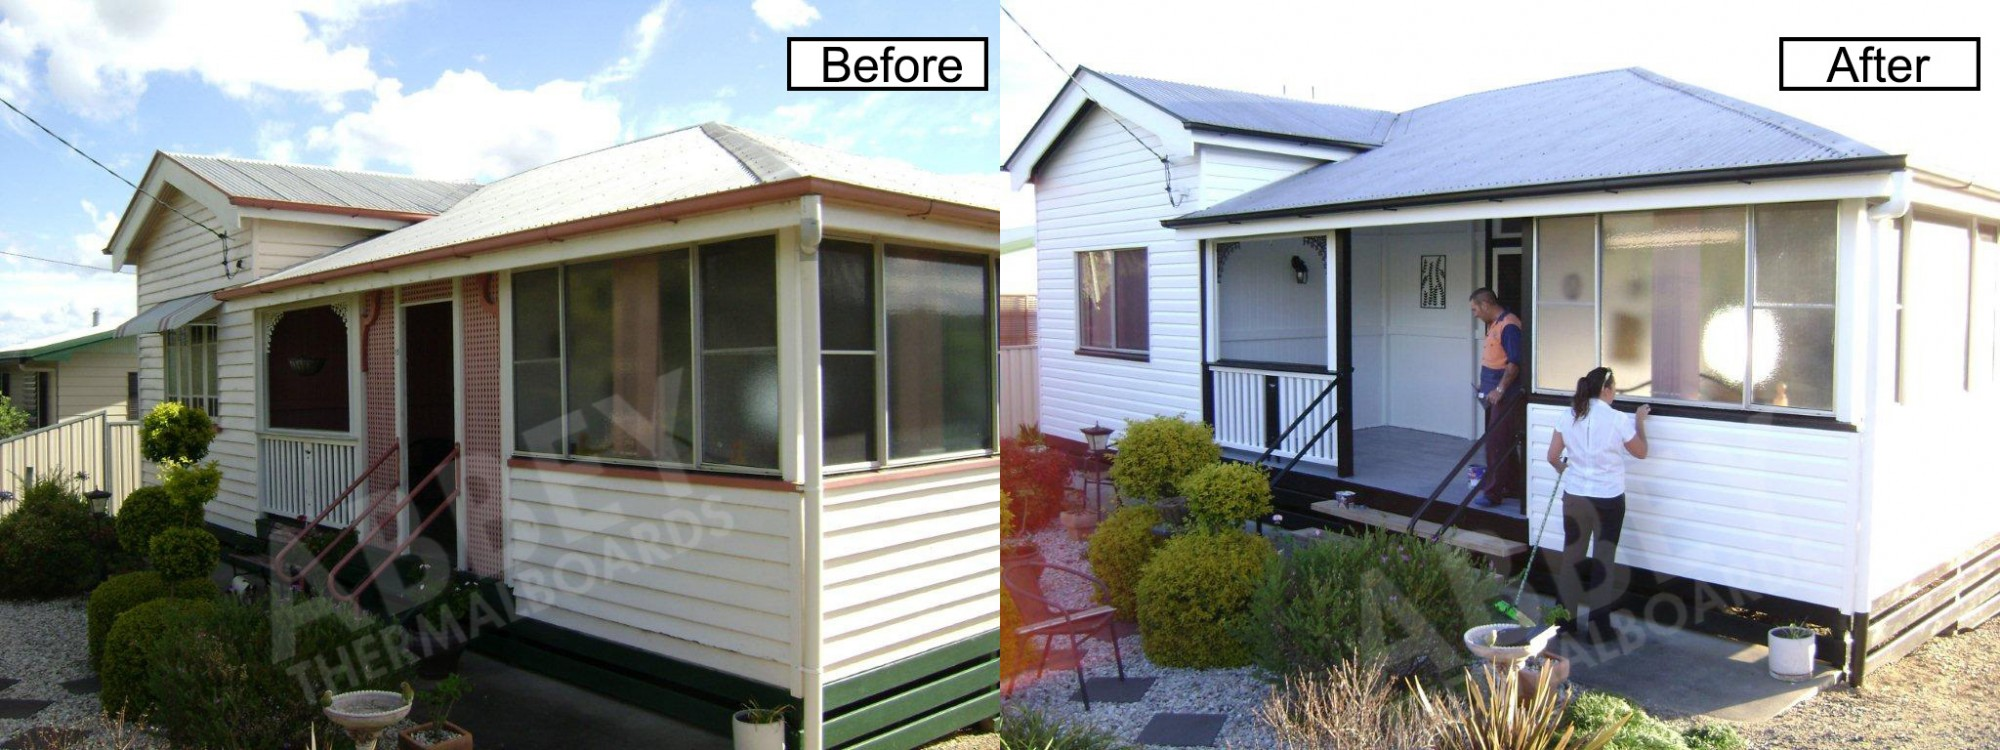 Vinyl cladding completed in Cairns by Abbey.